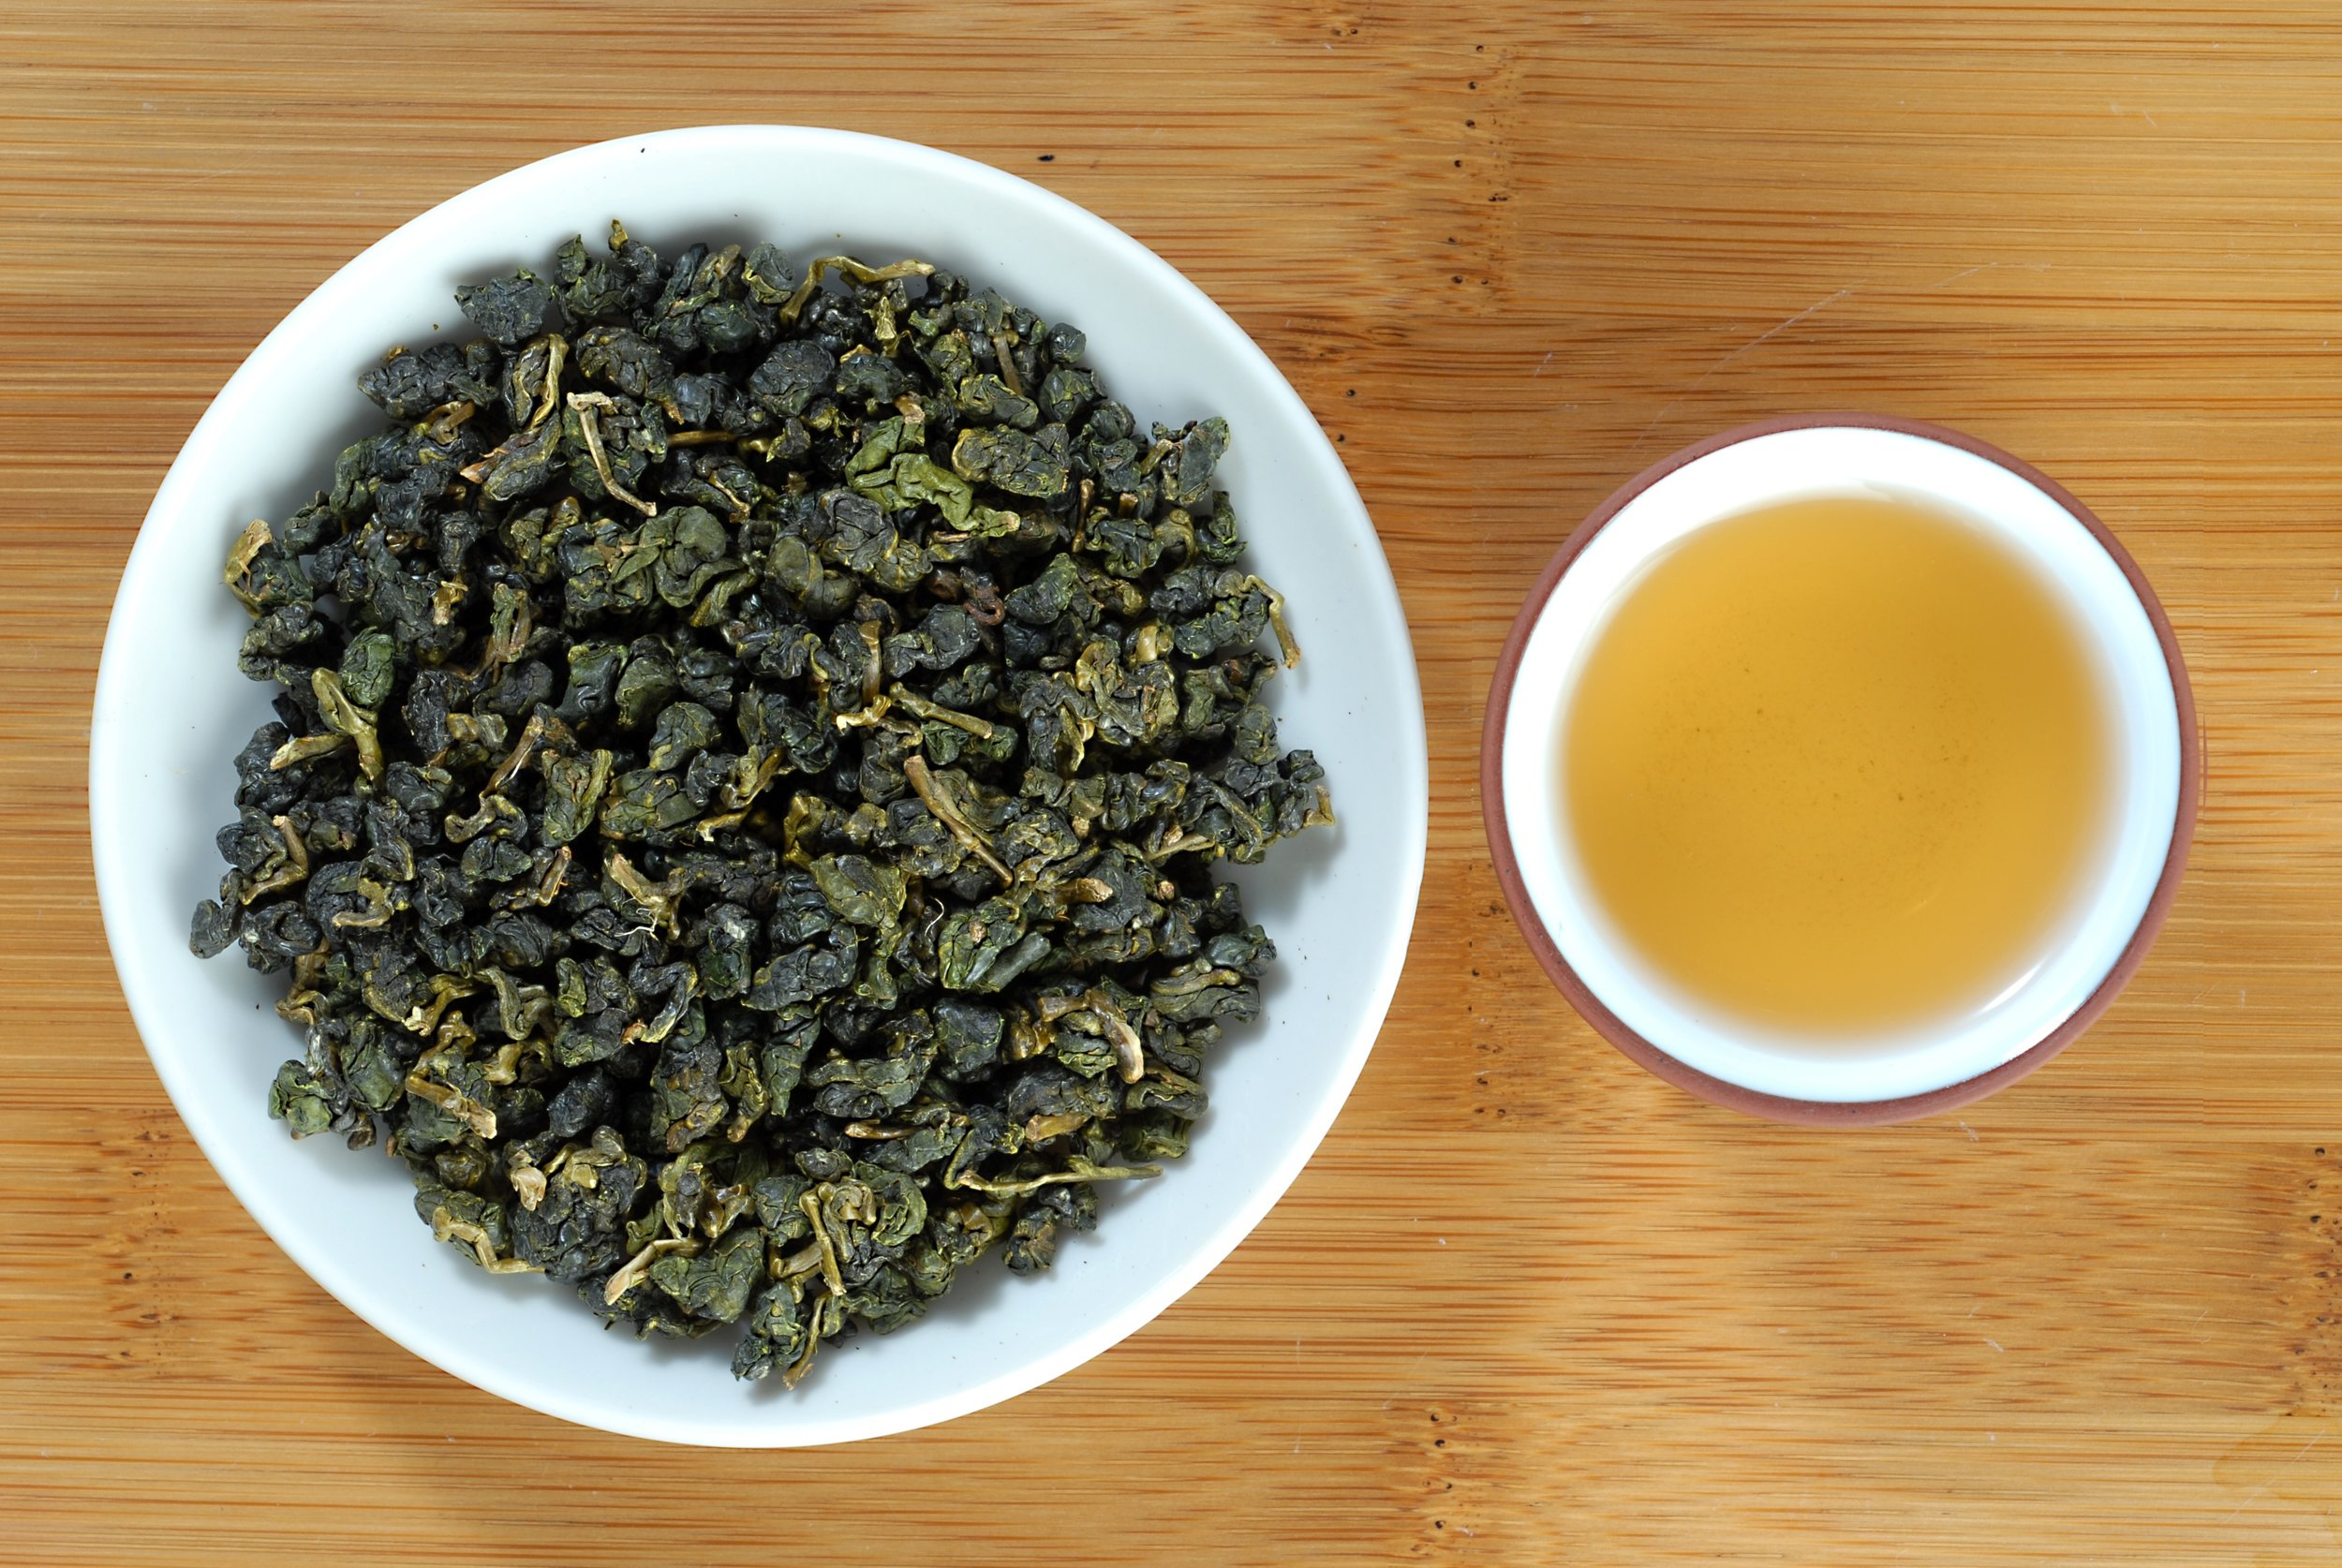 有記名茶奇種烏龍-高山茶 Chi Chong Oolong-High Mountain Oolong Tea